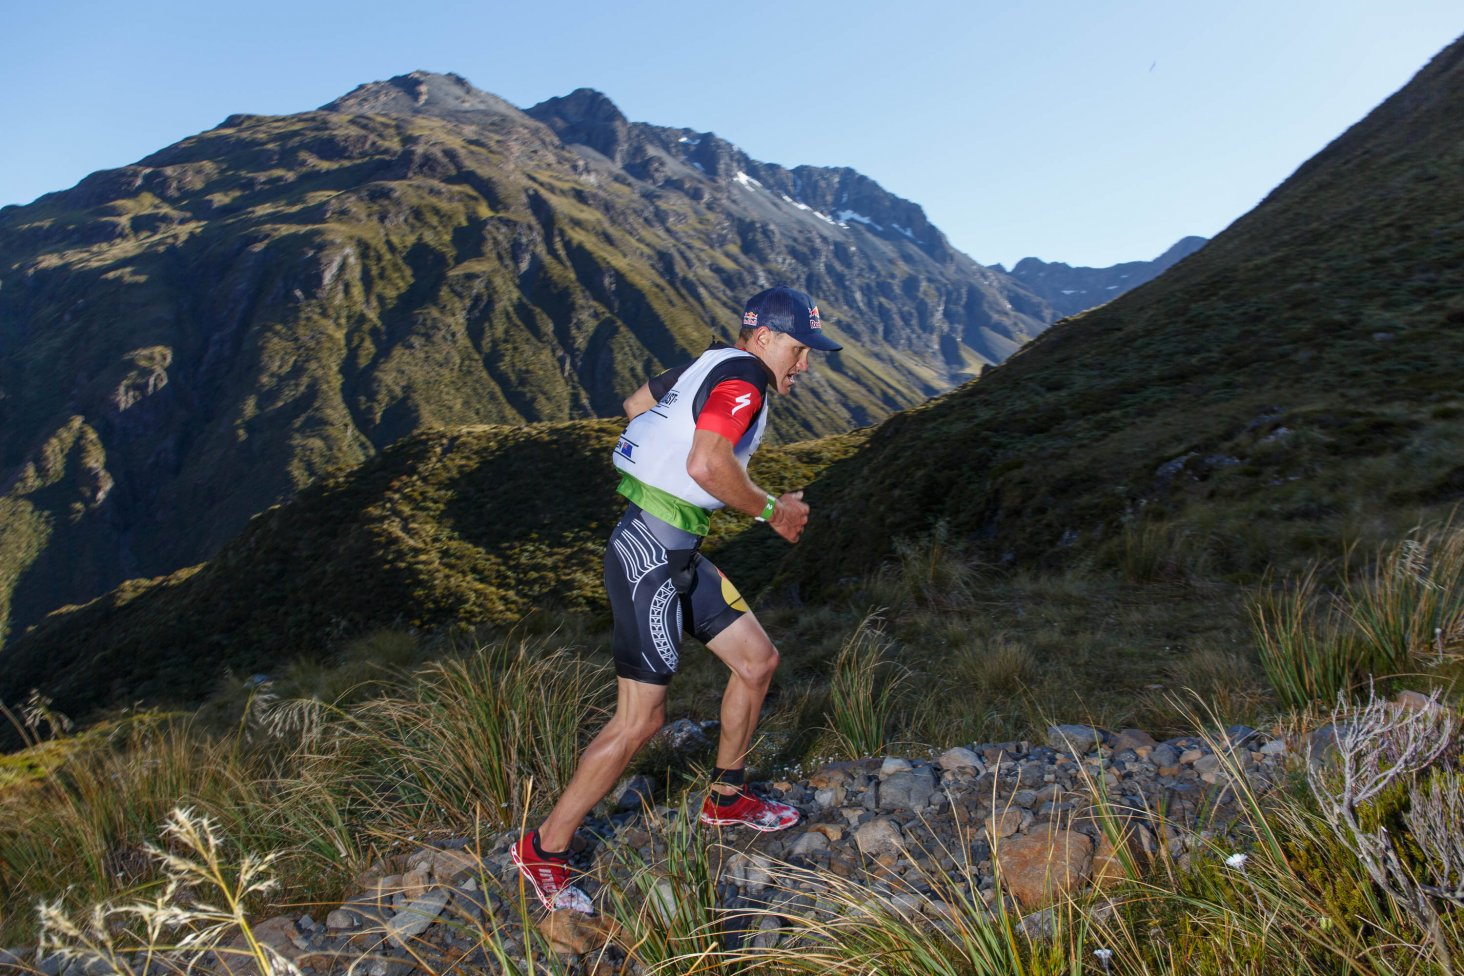 Subaru brand Ambassador Braden Currie is not competing at this year's Kathmandu Coast to Coast but shares his top tips for the race on Subaru New Zealand's new Facebook page.